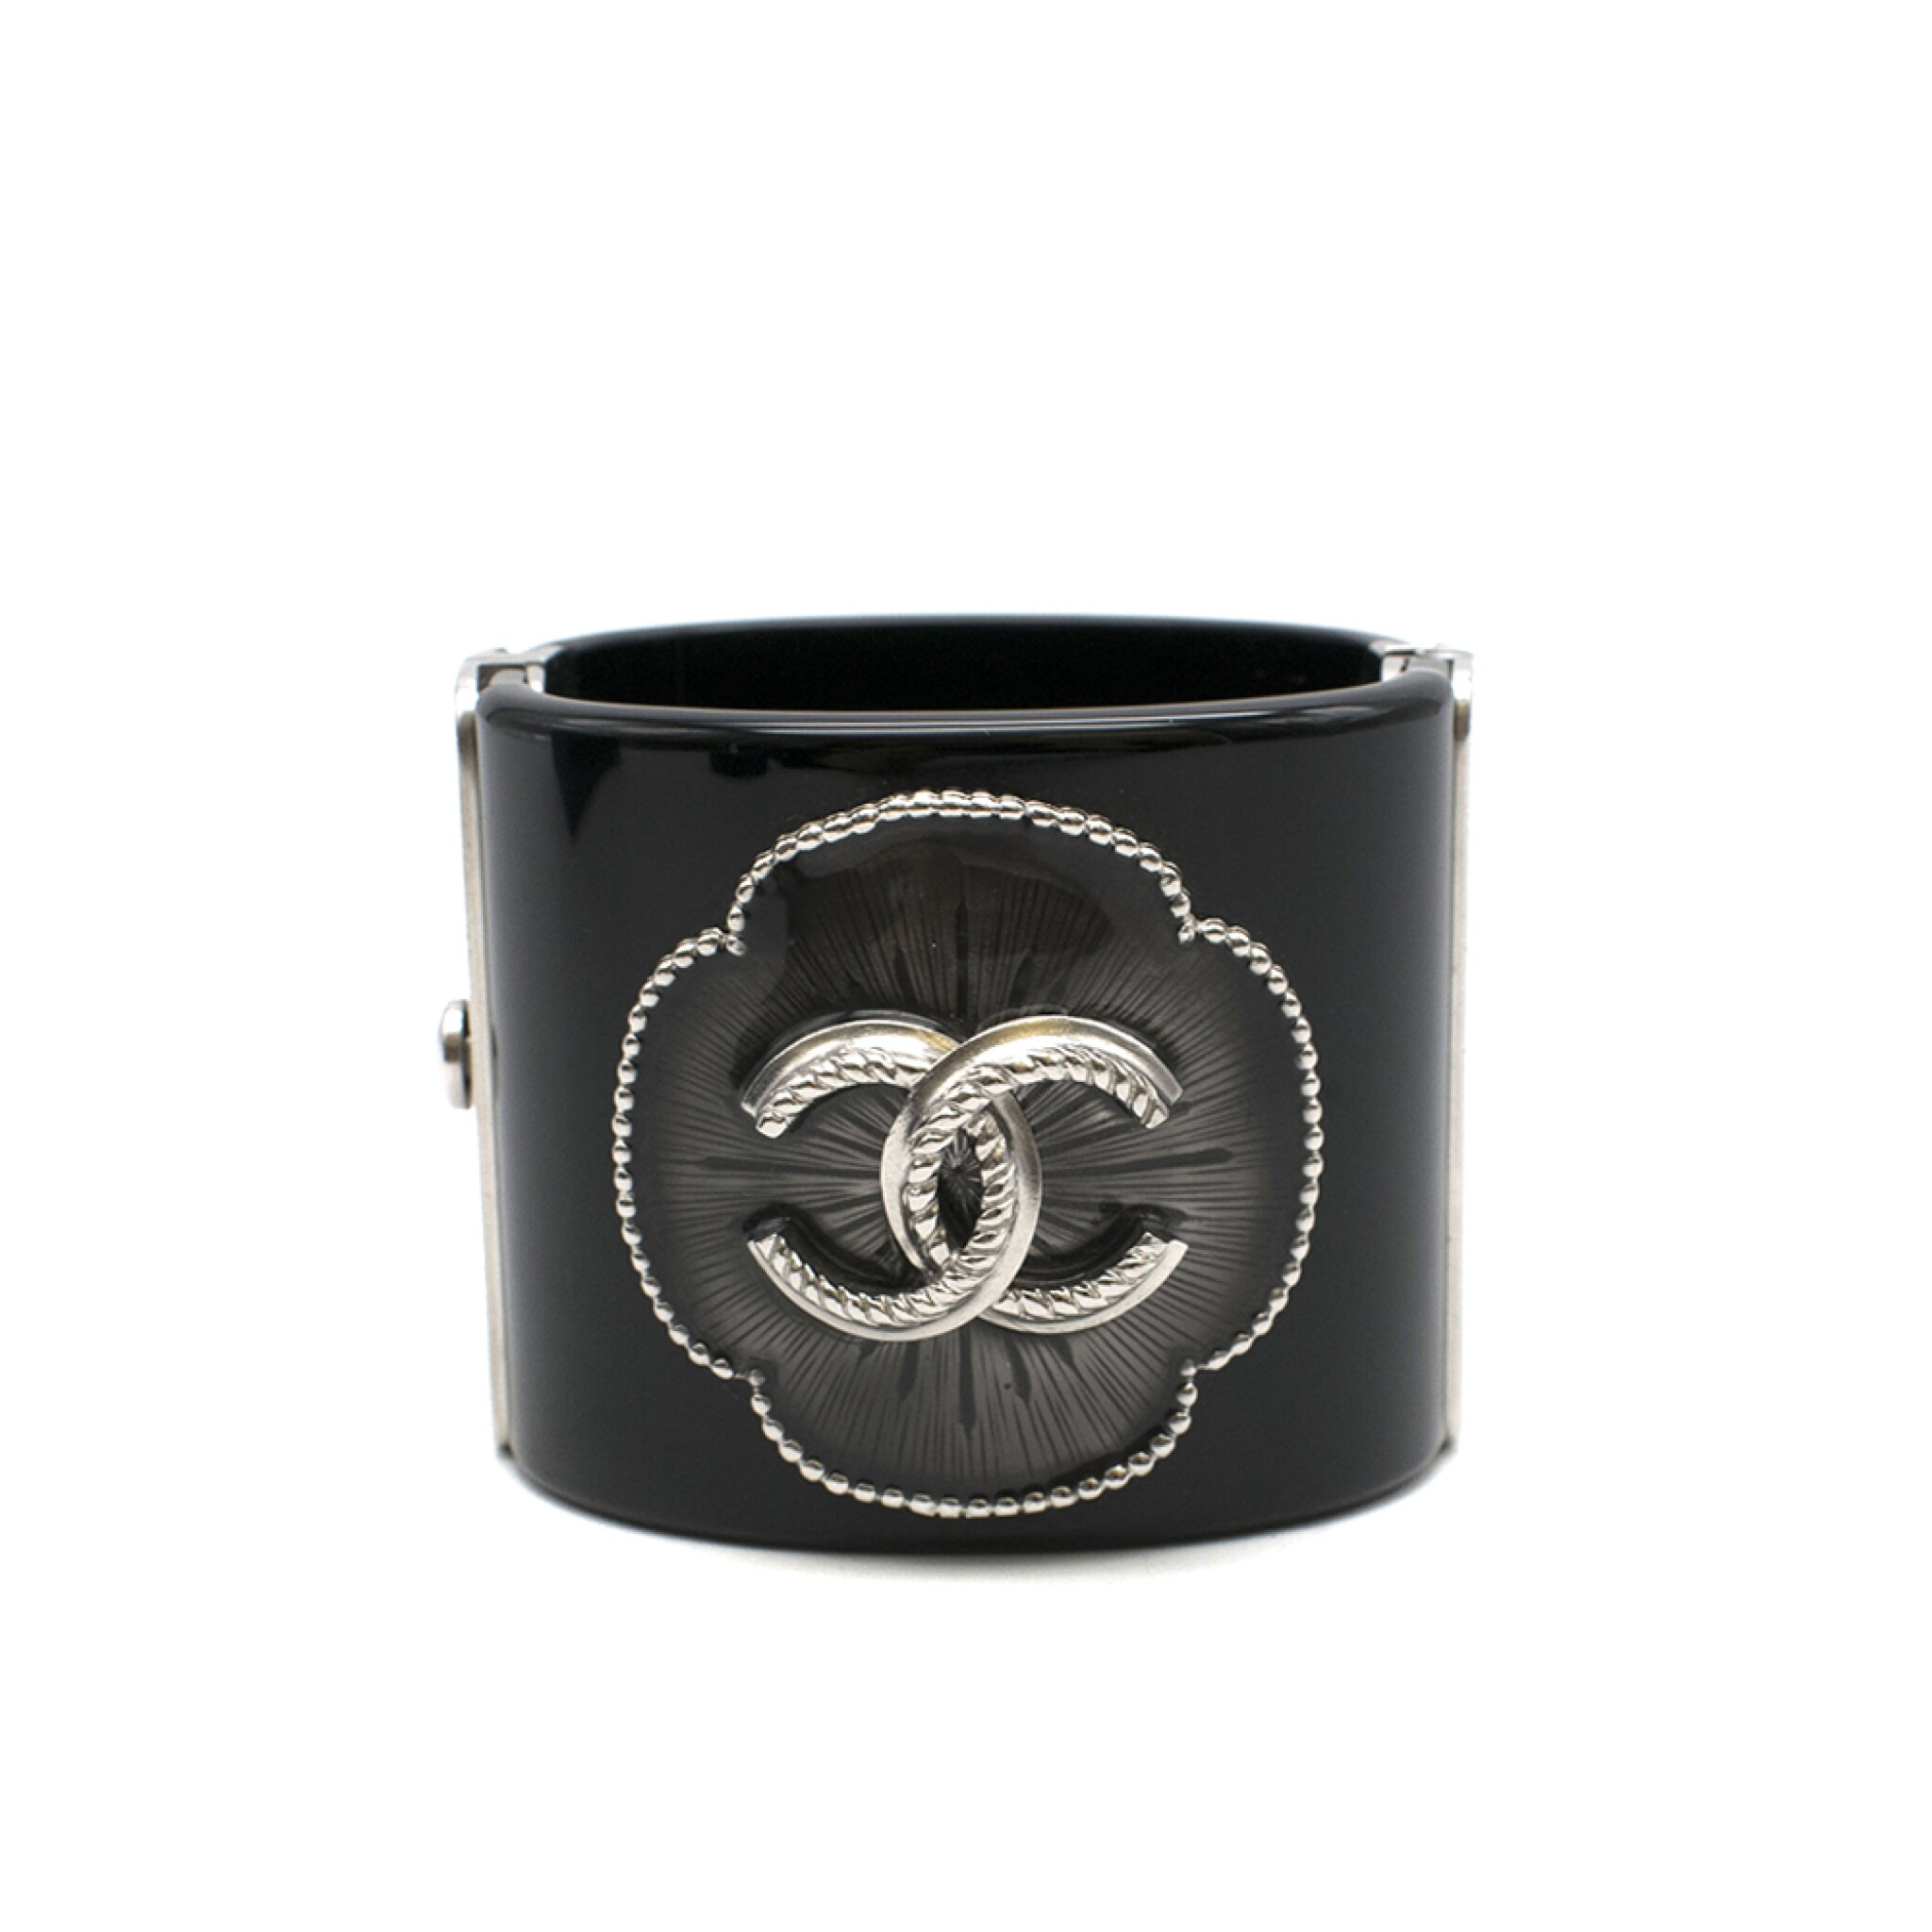 View full screen - View 1 of Lot 174. CHANEL | BLACK PERSPEX CUFF WITH A RESIN FILLED CAMELIA STUDDED FLORAL OUTLINE AND ANTHRACITE TONE HARDWARE AND CC EMBELLISHMENT, 2015.